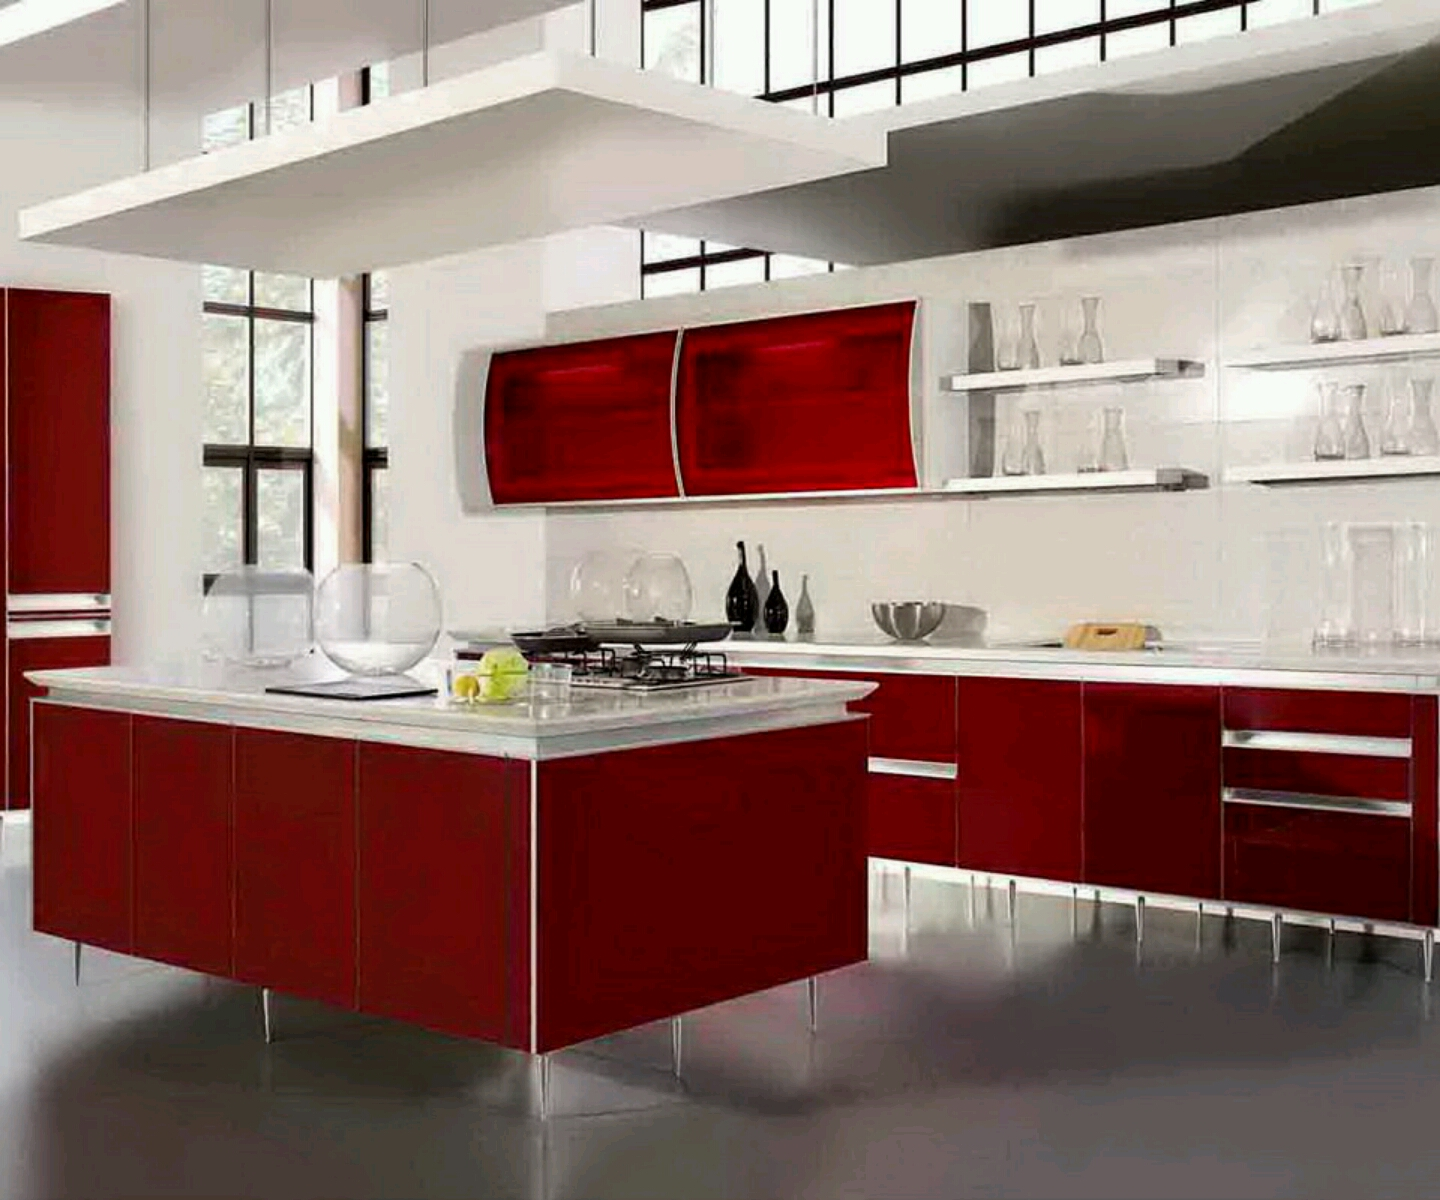 exceptional Latest Design Kitchen #9: Design New Kitchen The New Modern Kitchen Design Latest Interior - Latest  designer kitchen